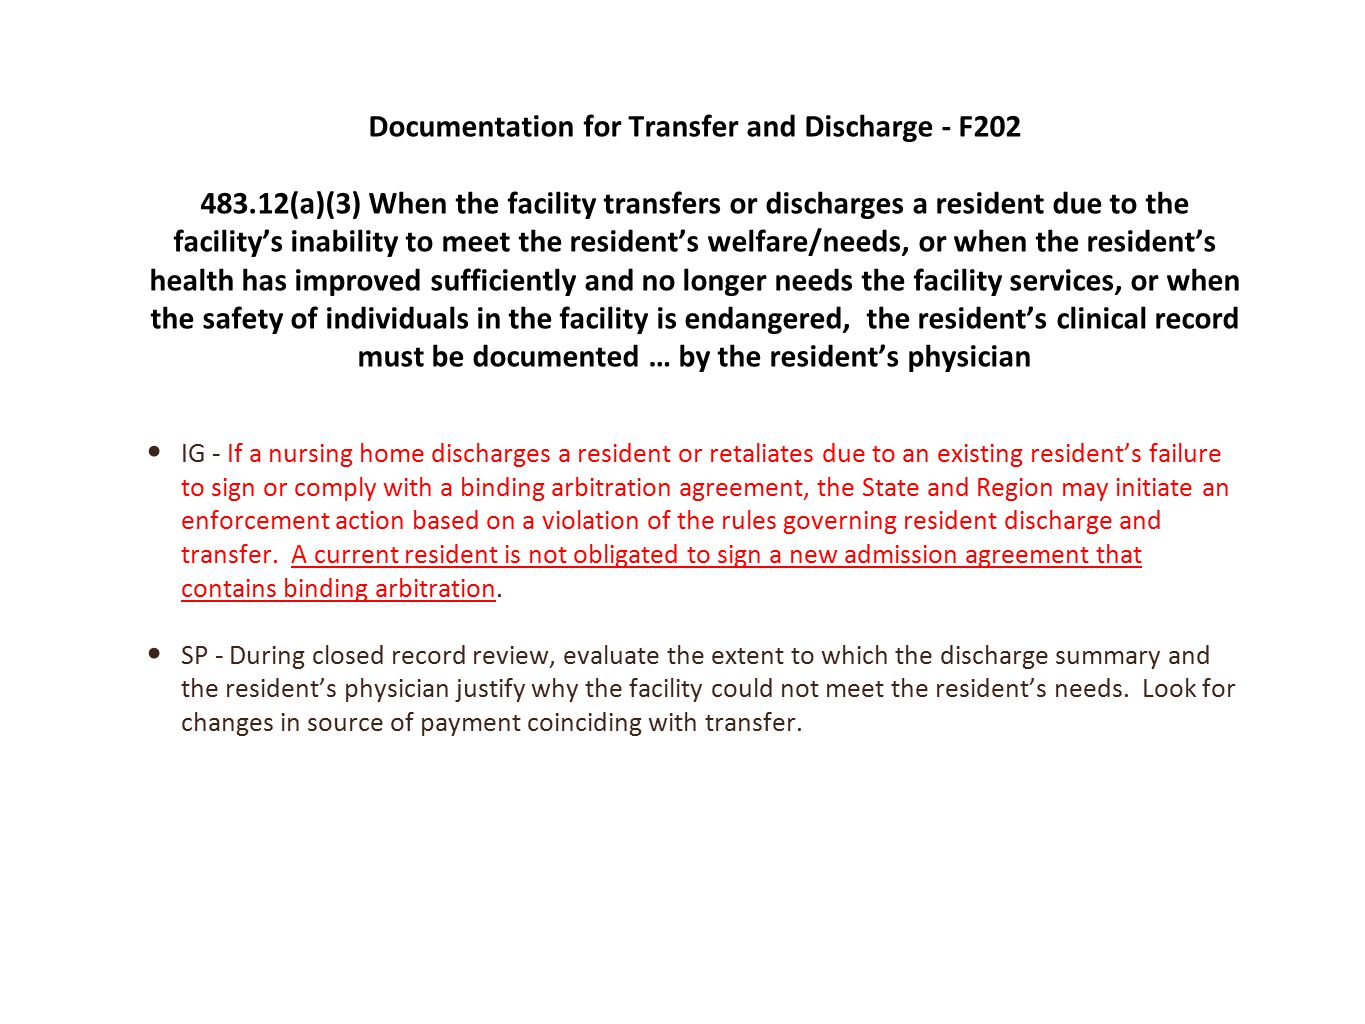 IG - If a nursing home discharges a resident or retaliates due to an existing resident's failure to sign or comply with a binding arbitration agreement, the State and Region may initiate an enforcement action based on a violation of the rules governing resident discharge and transfer.